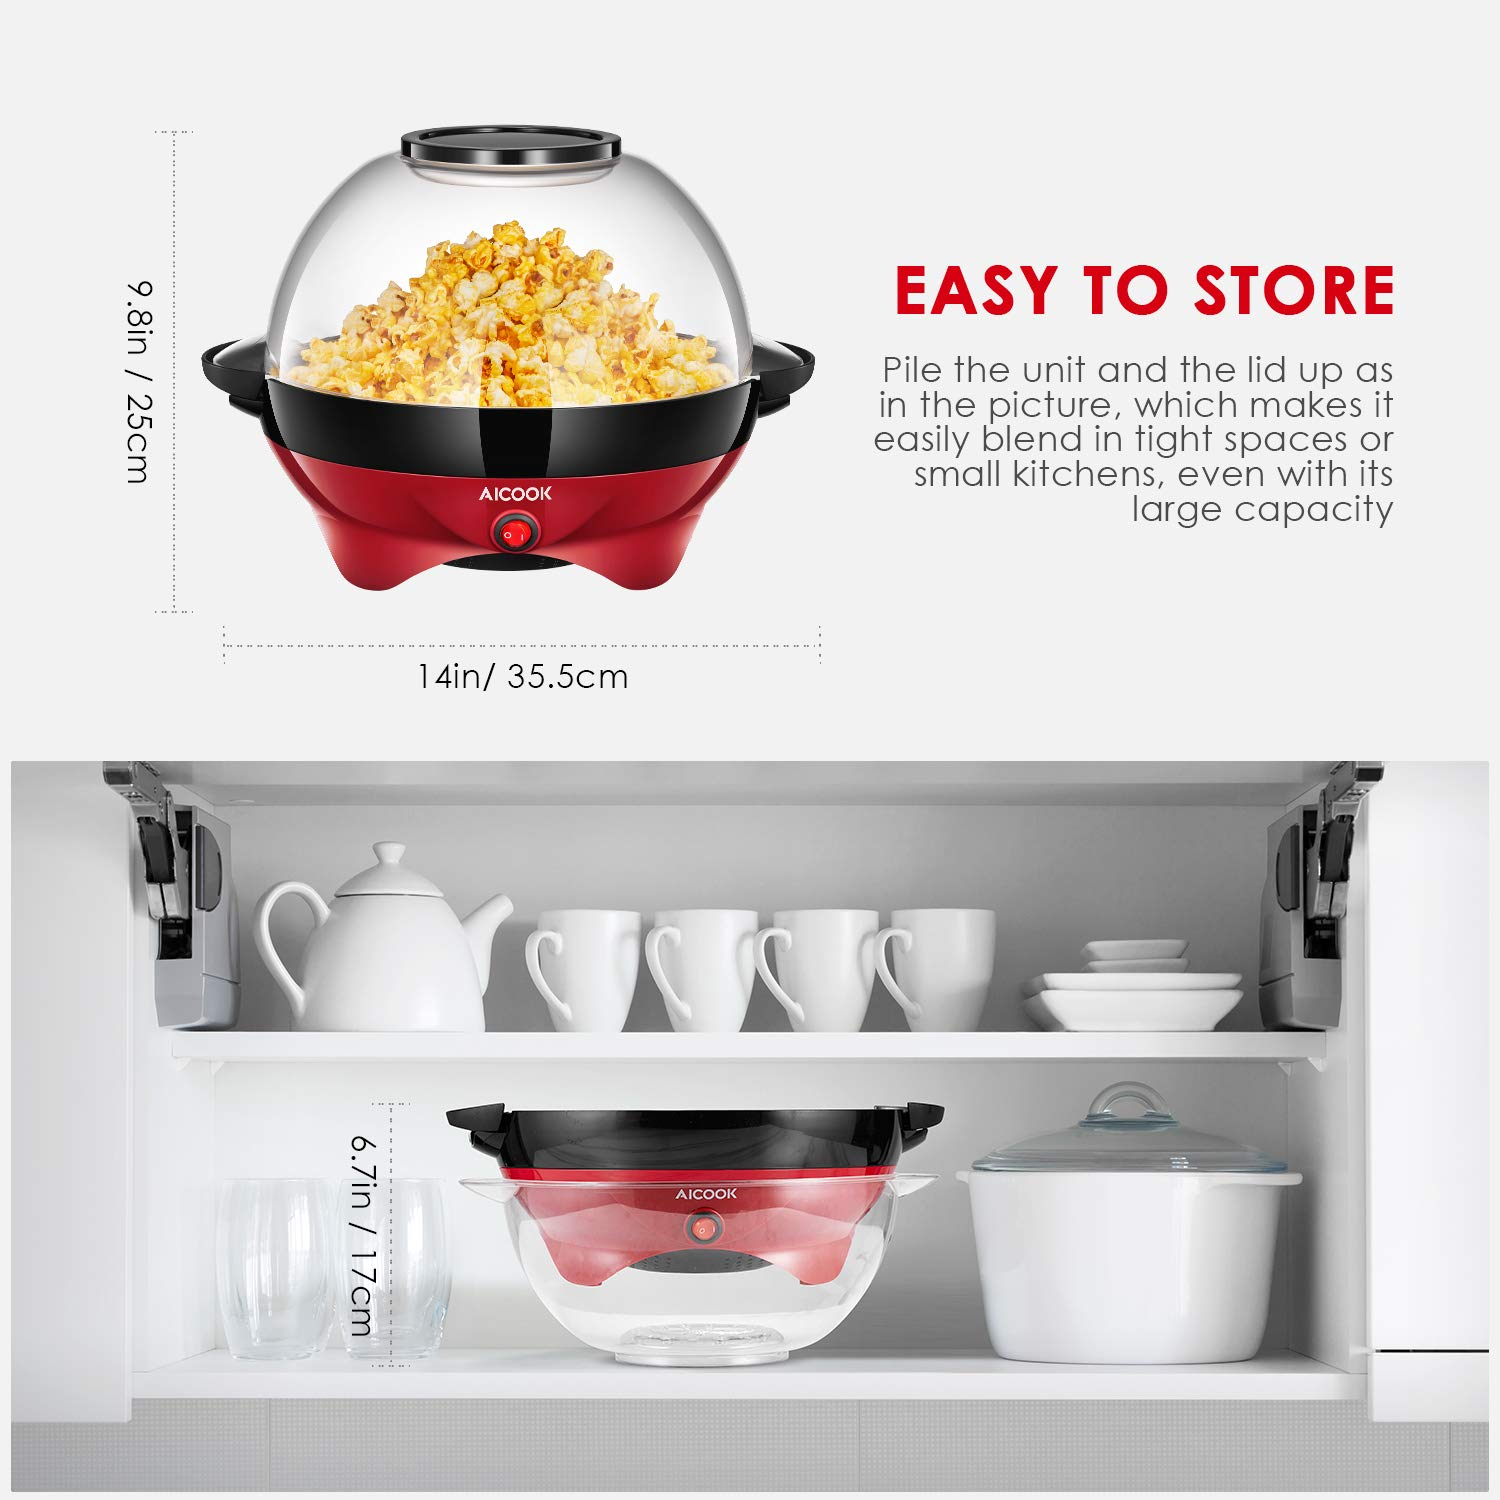 Popcorn Maker, AICOOK Electric Hot Oil Popcorn Popper Machine with Stirring Rod Offers Large Lid for Serving Bowl and Convenient Storage, 6-Quart, Red by AICOOK (Image #3)